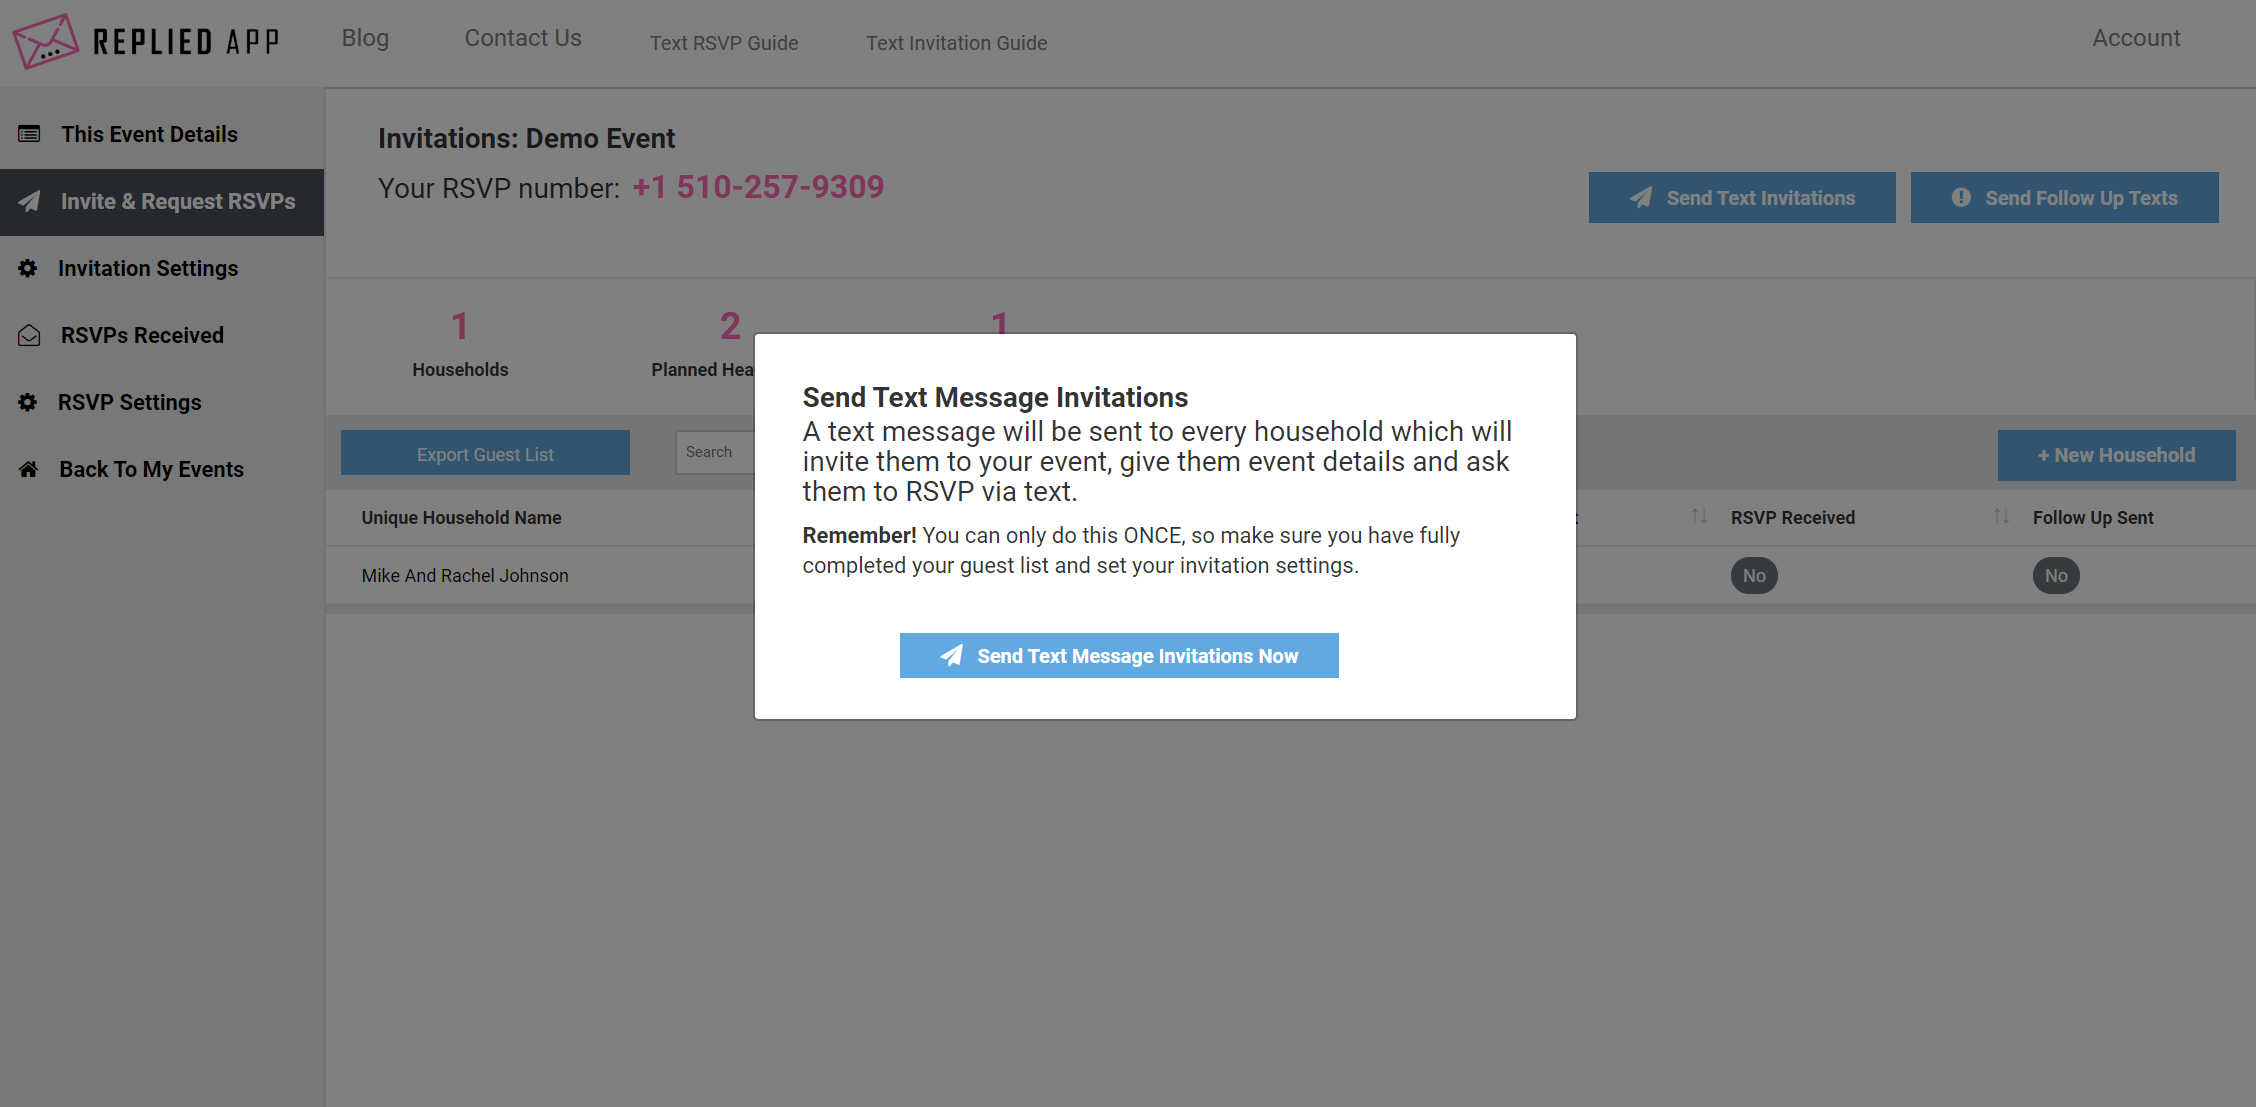 send text message invitations now